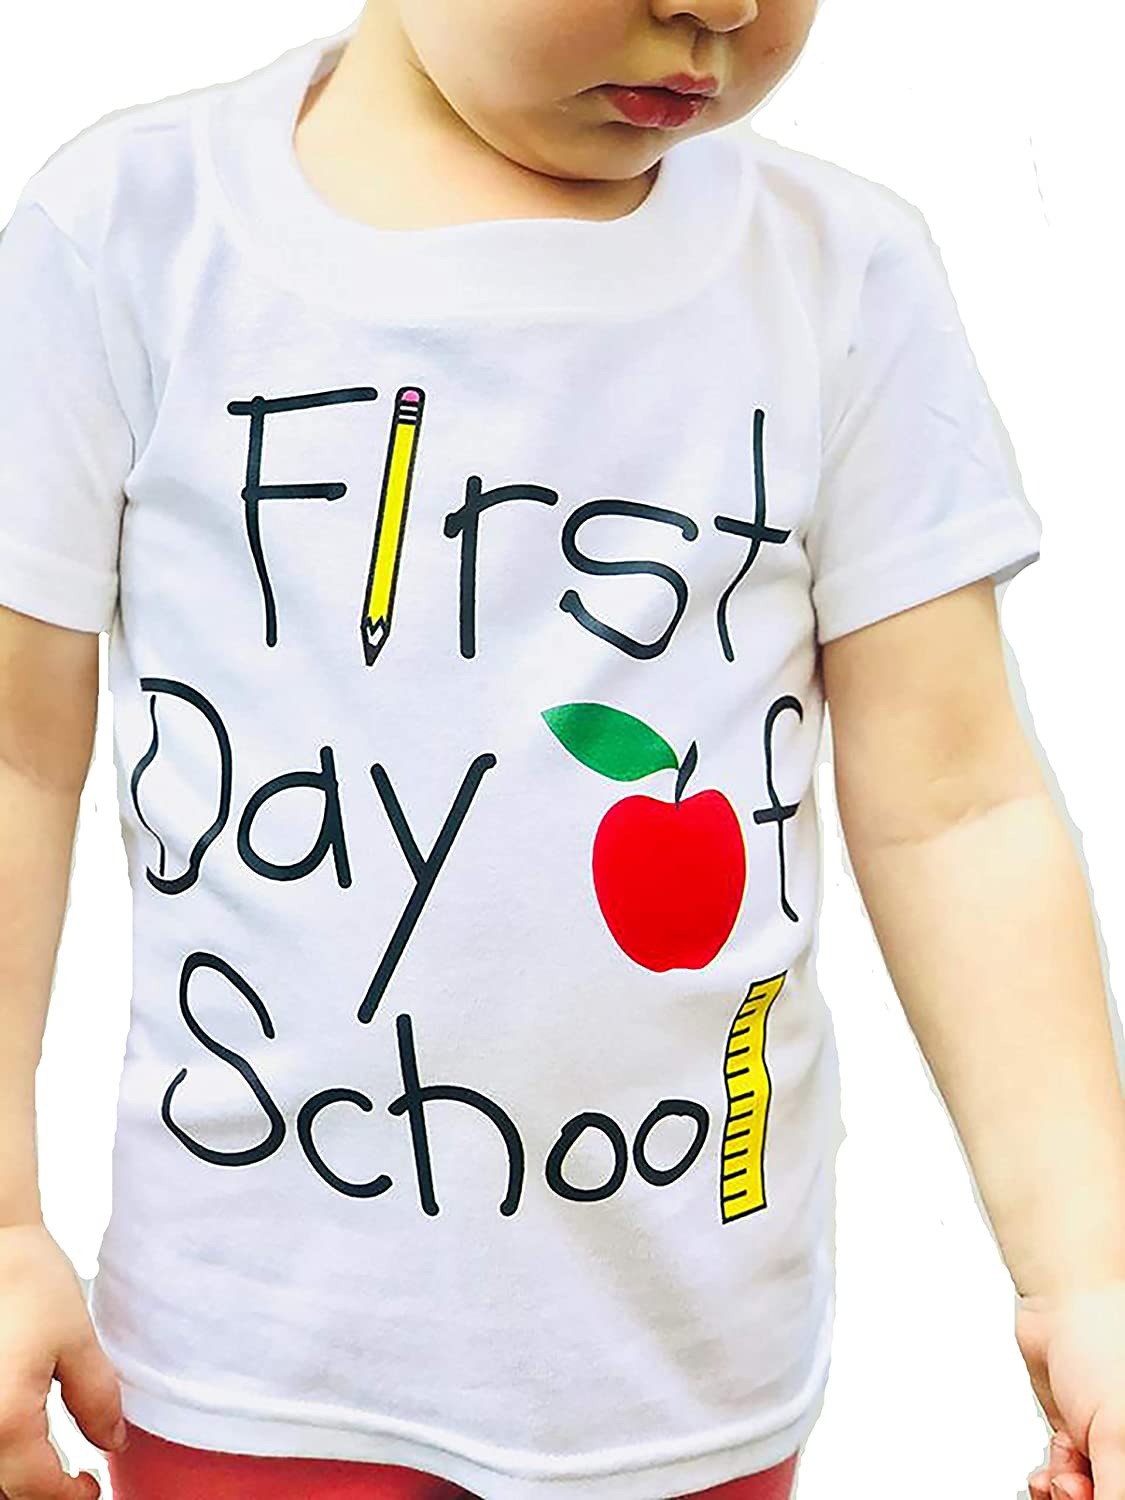 First Day of School Shirt Back Trust T-Shirt Toddler Welco to Soldering